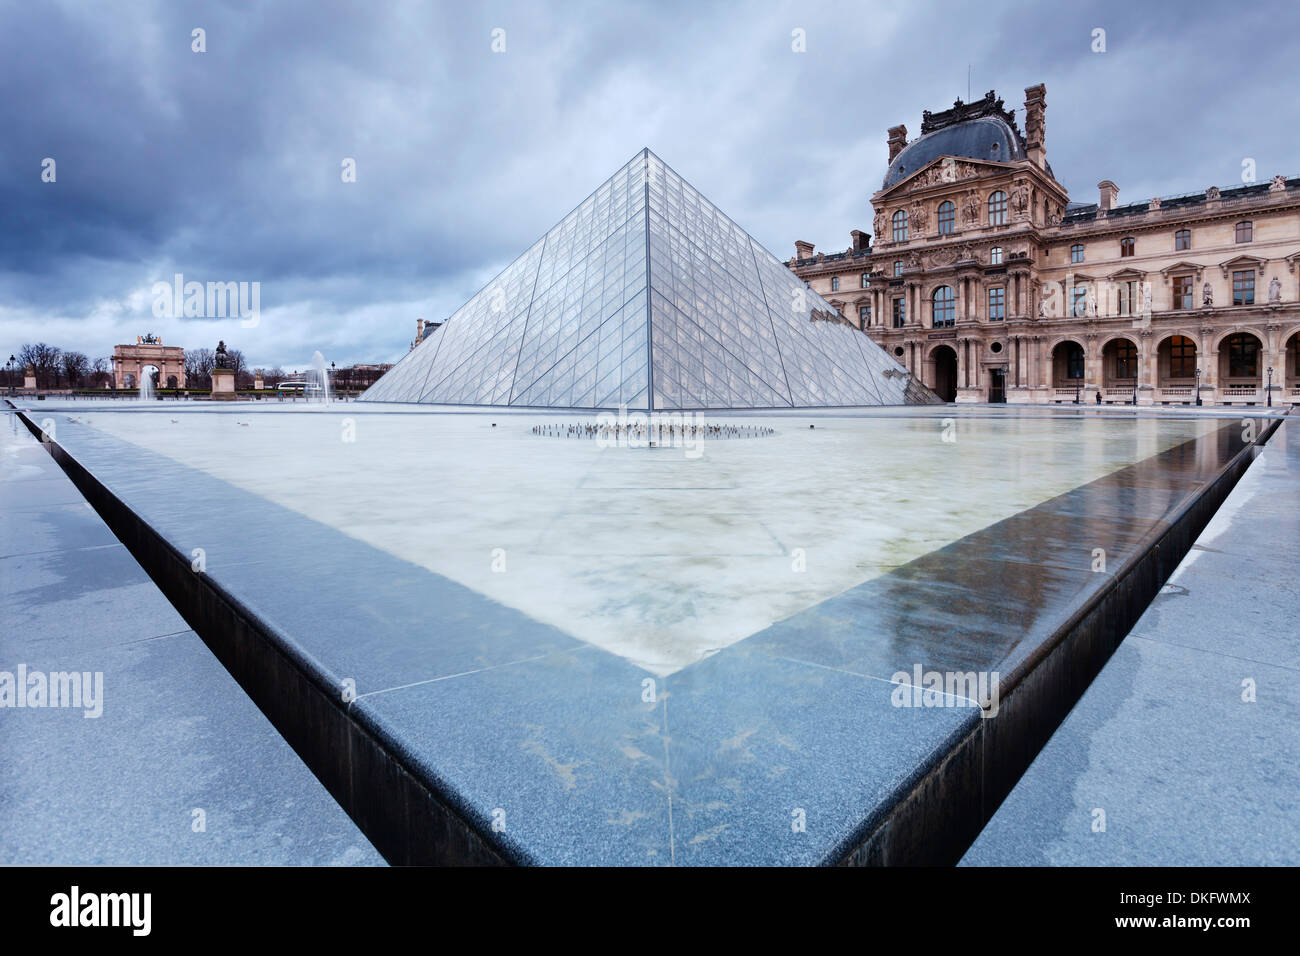 Louvre Museum and pyramid, Paris, Ile de France, France, Europe - Stock Image